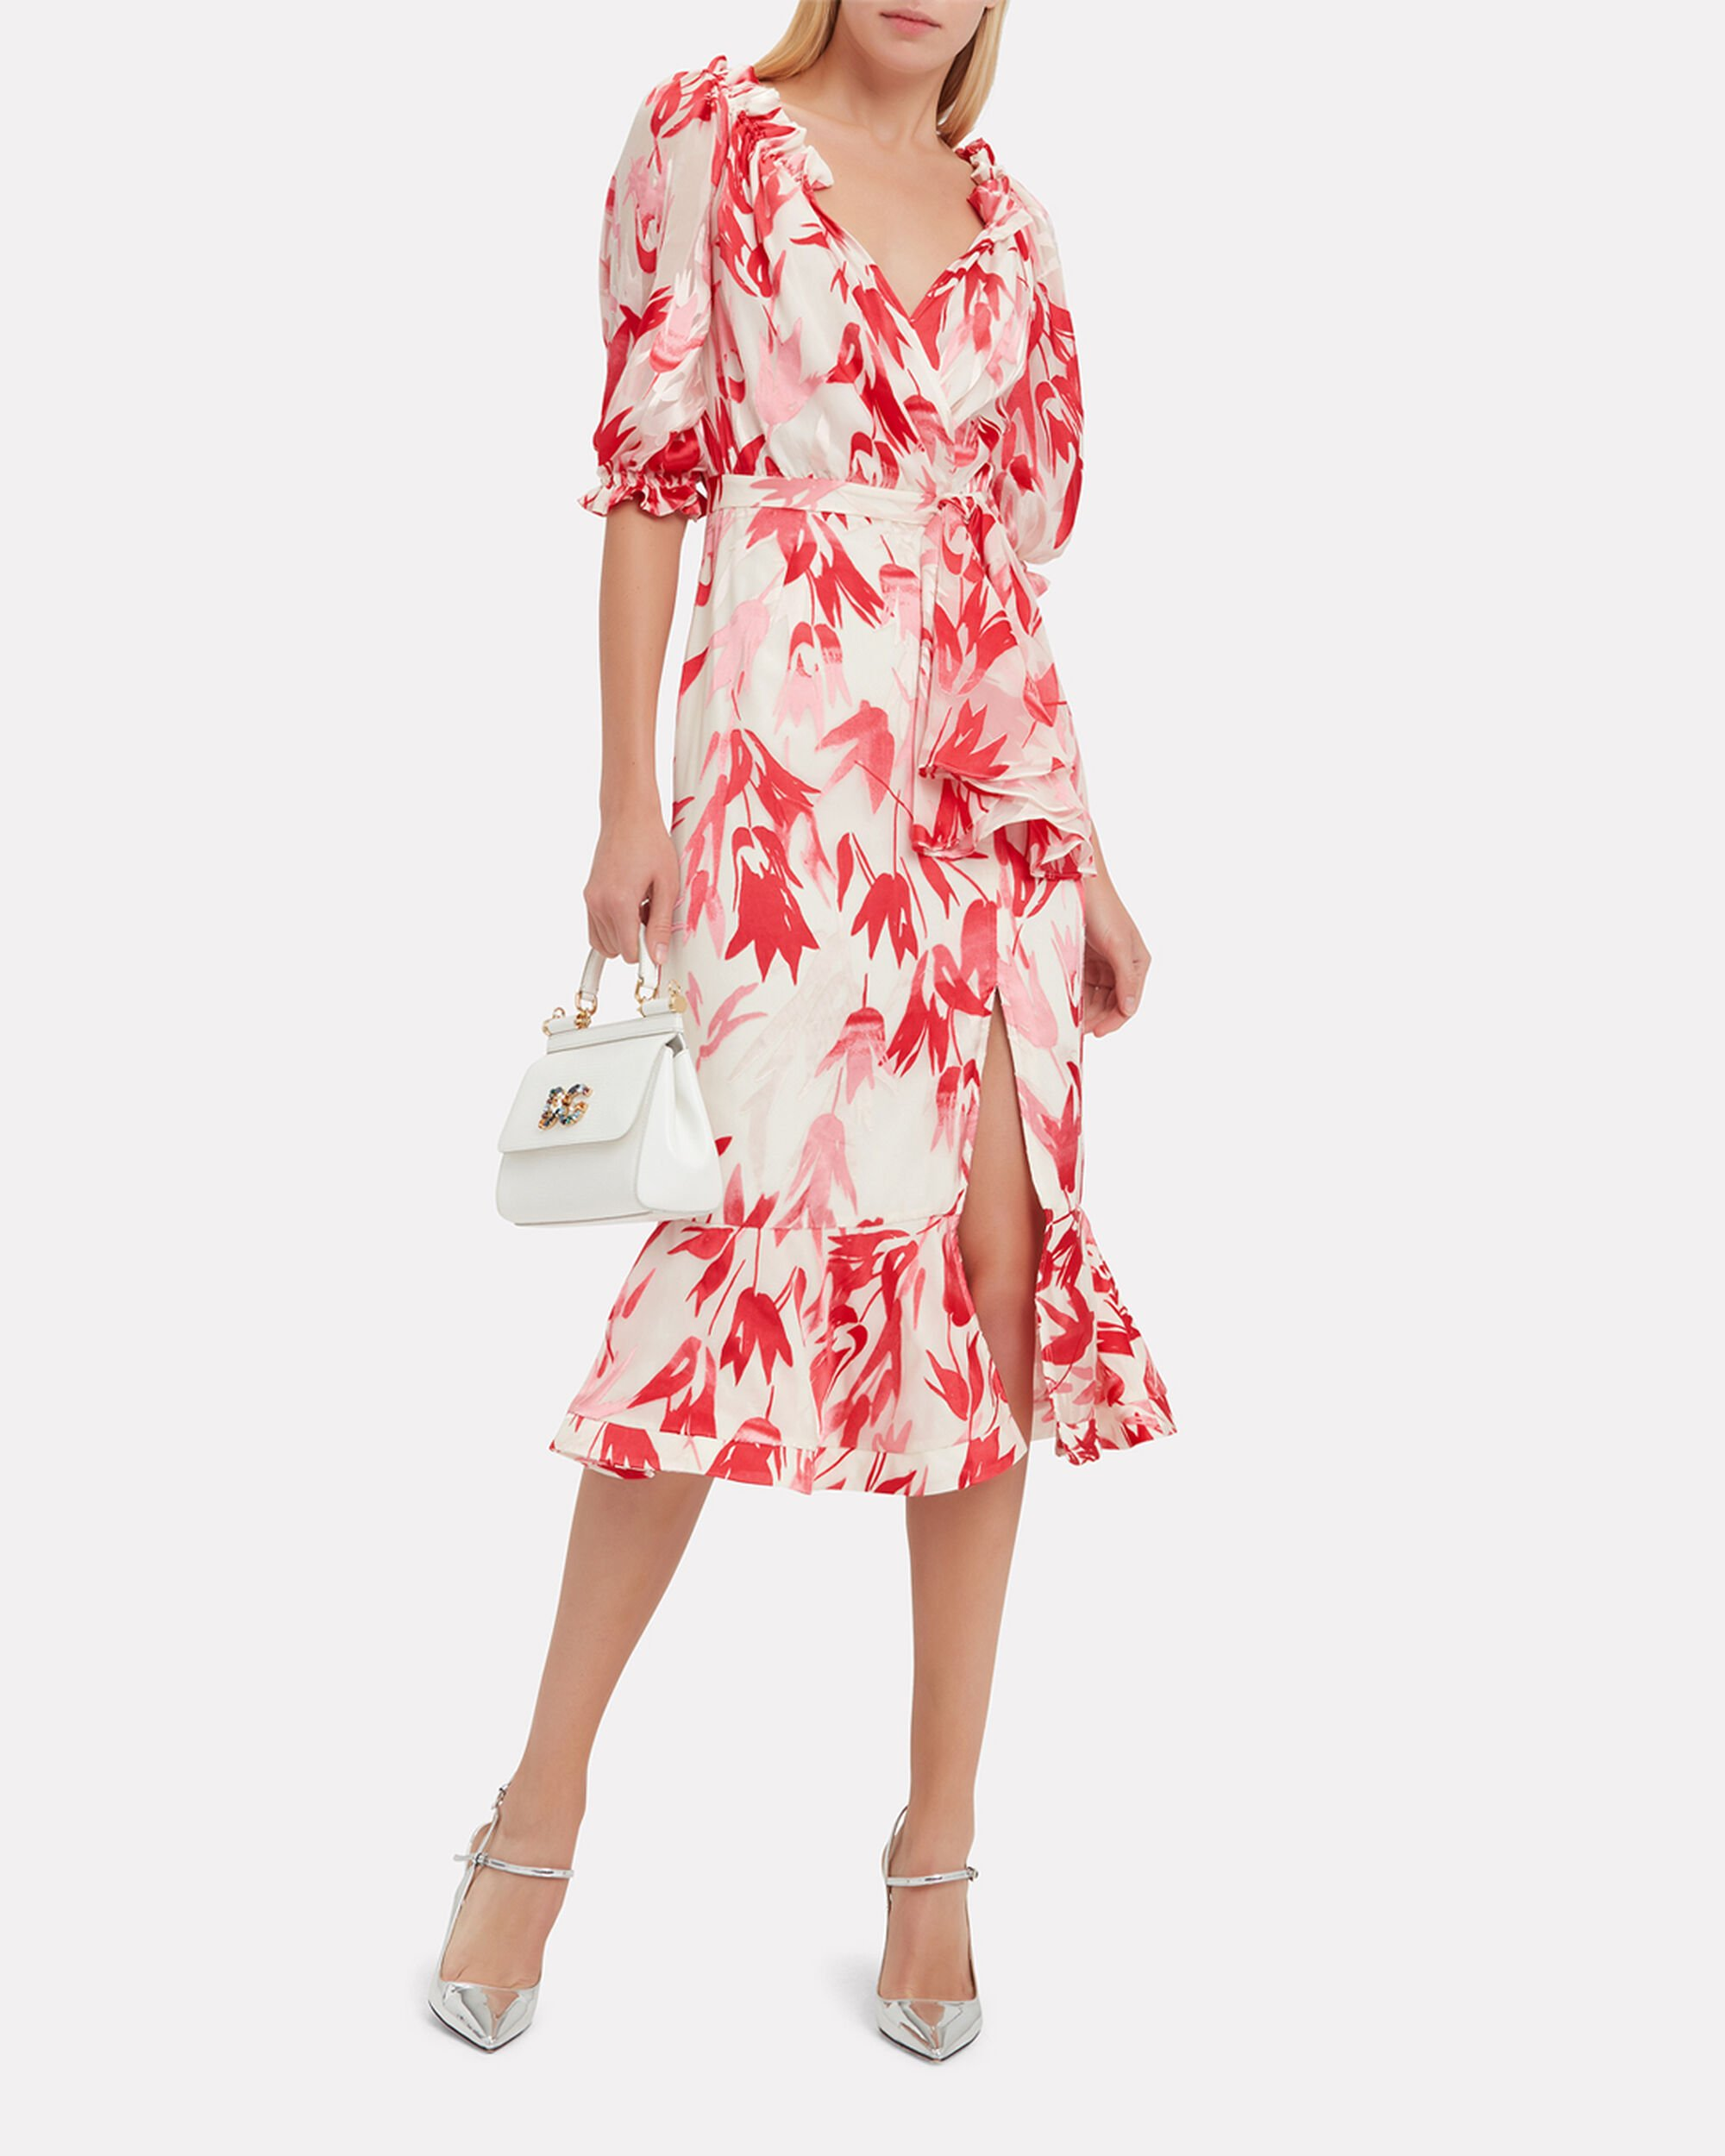 Olivia Floral Midi Dress, RED/PINK FLORAL/IVORY, hi-res